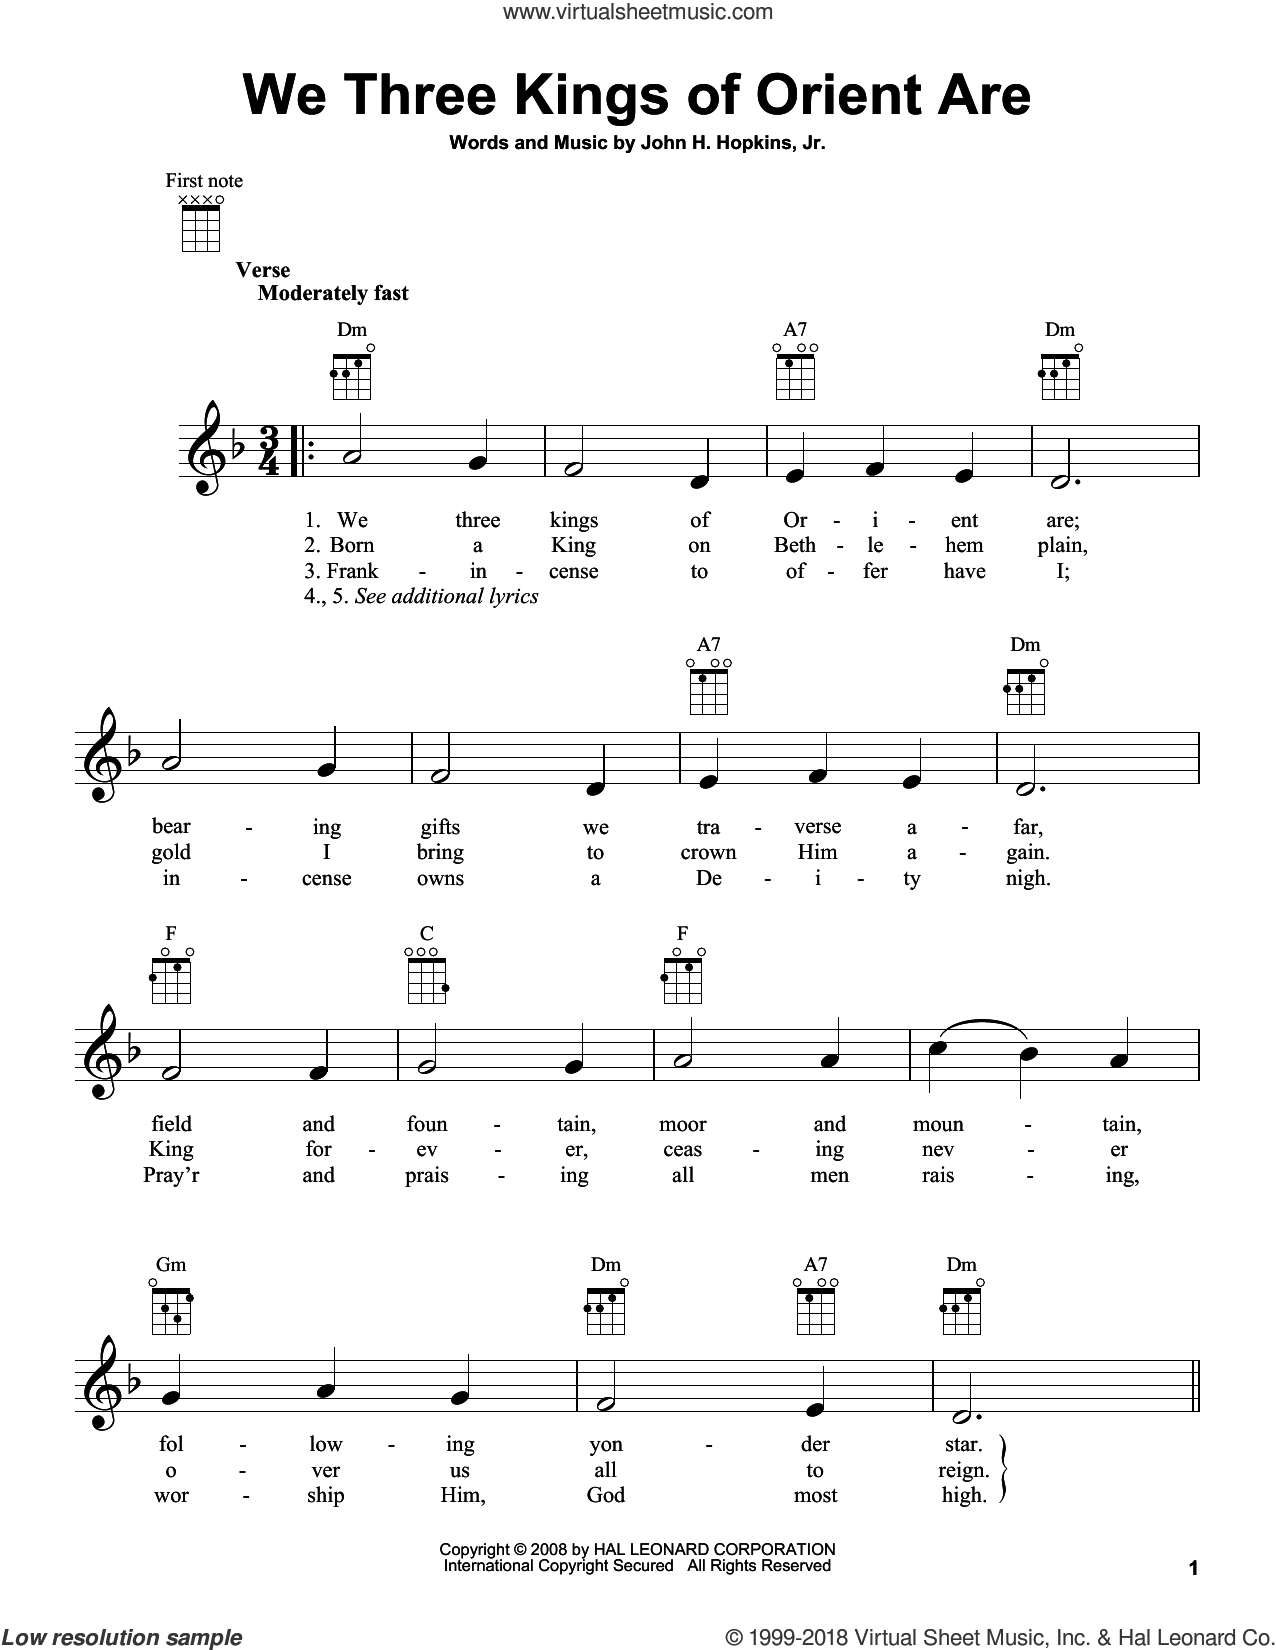 We Three Kings Of Orient Are sheet music for ukulele by John H. Hopkins, Jr., intermediate skill level